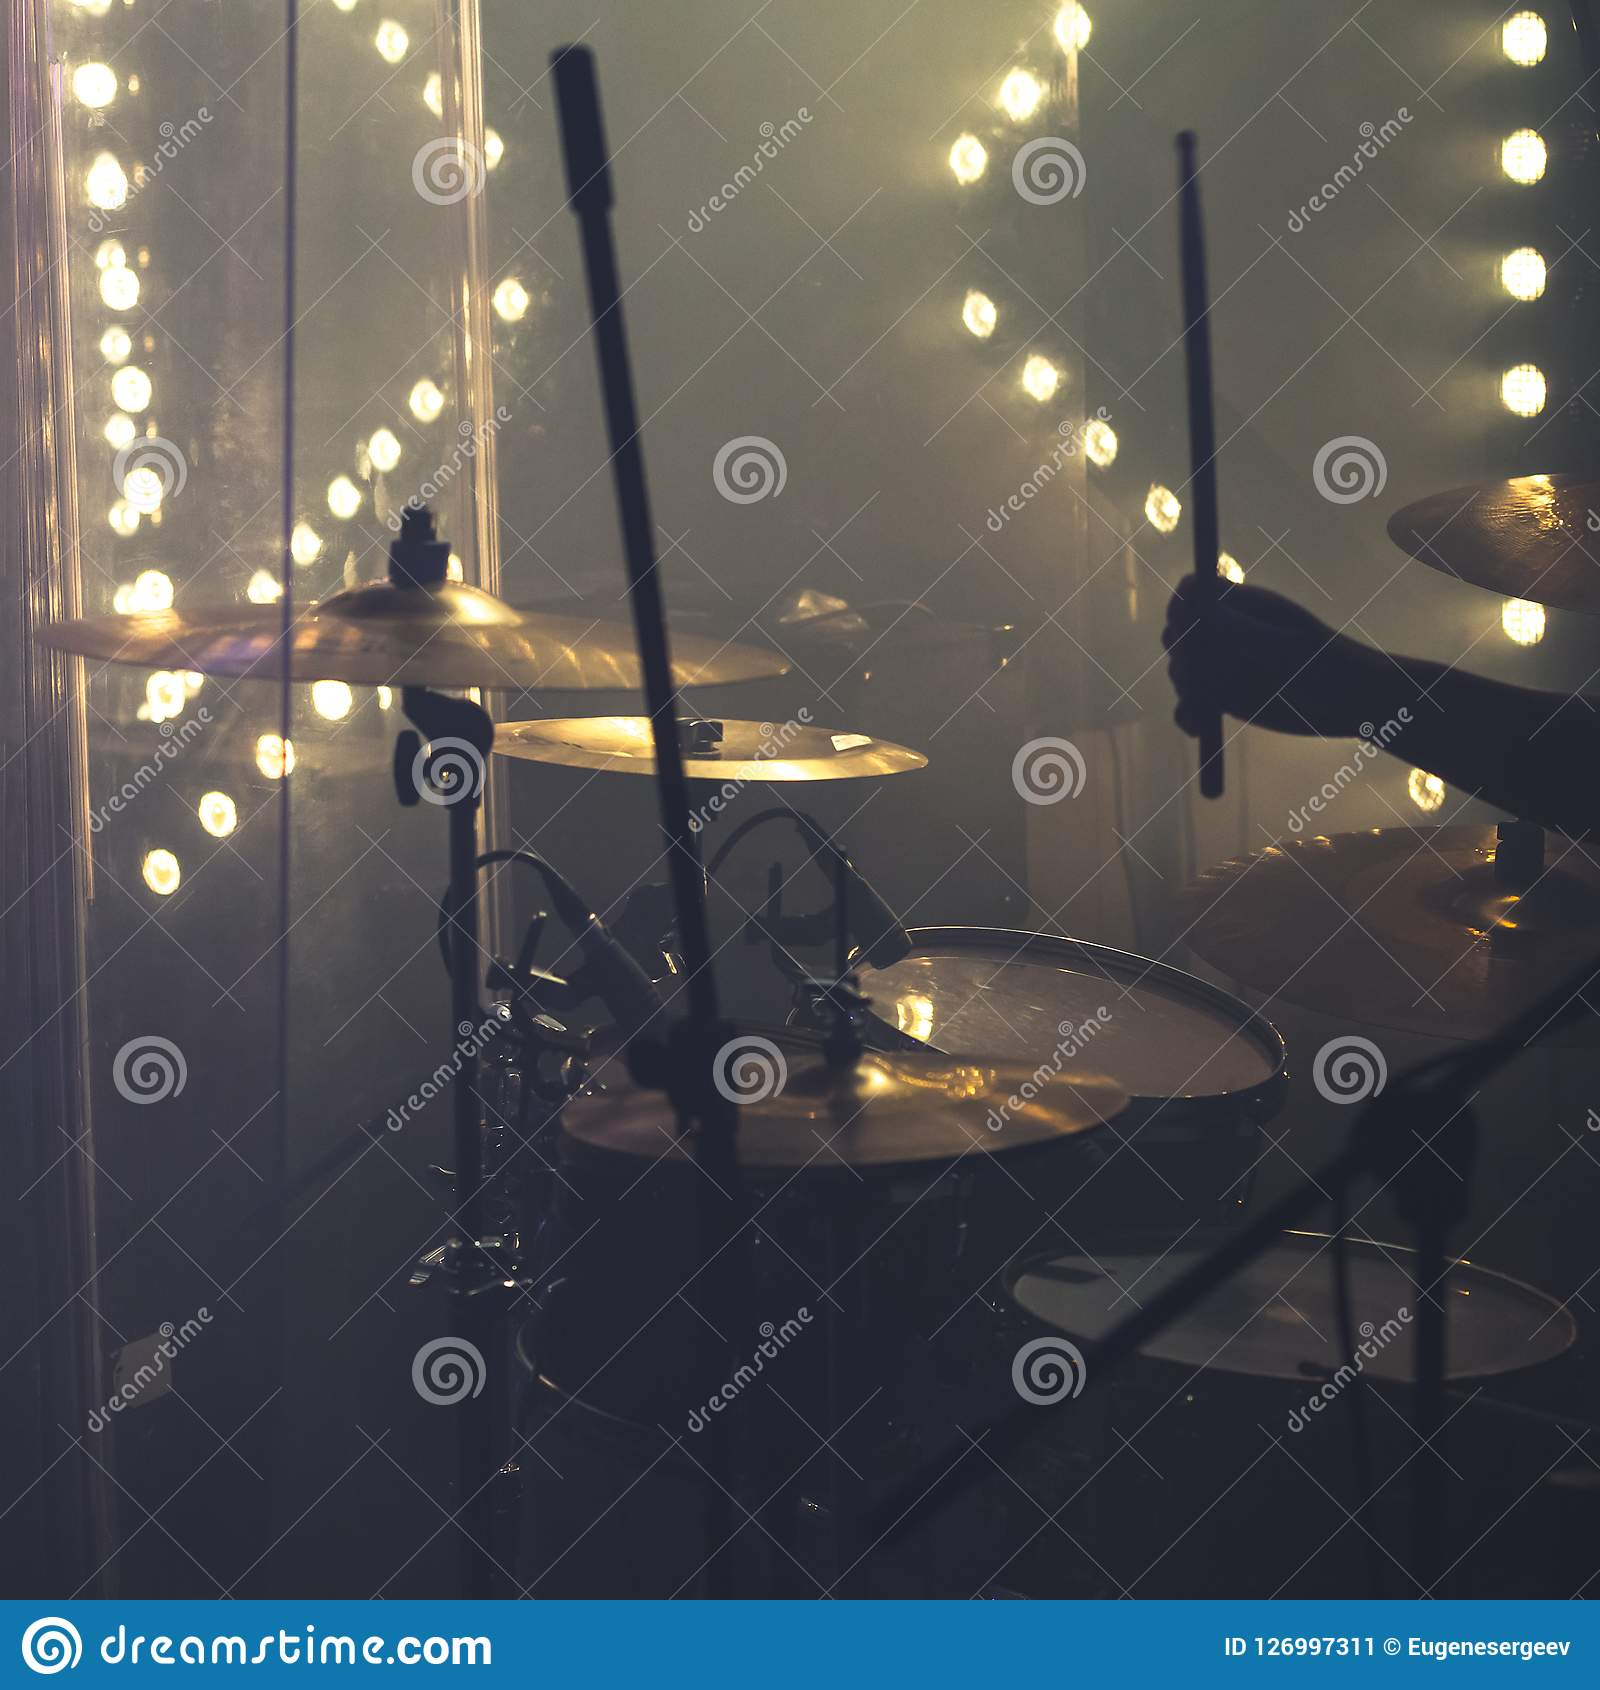 Drum Set With Cymbals And Drummer Hand Stock Image - Image